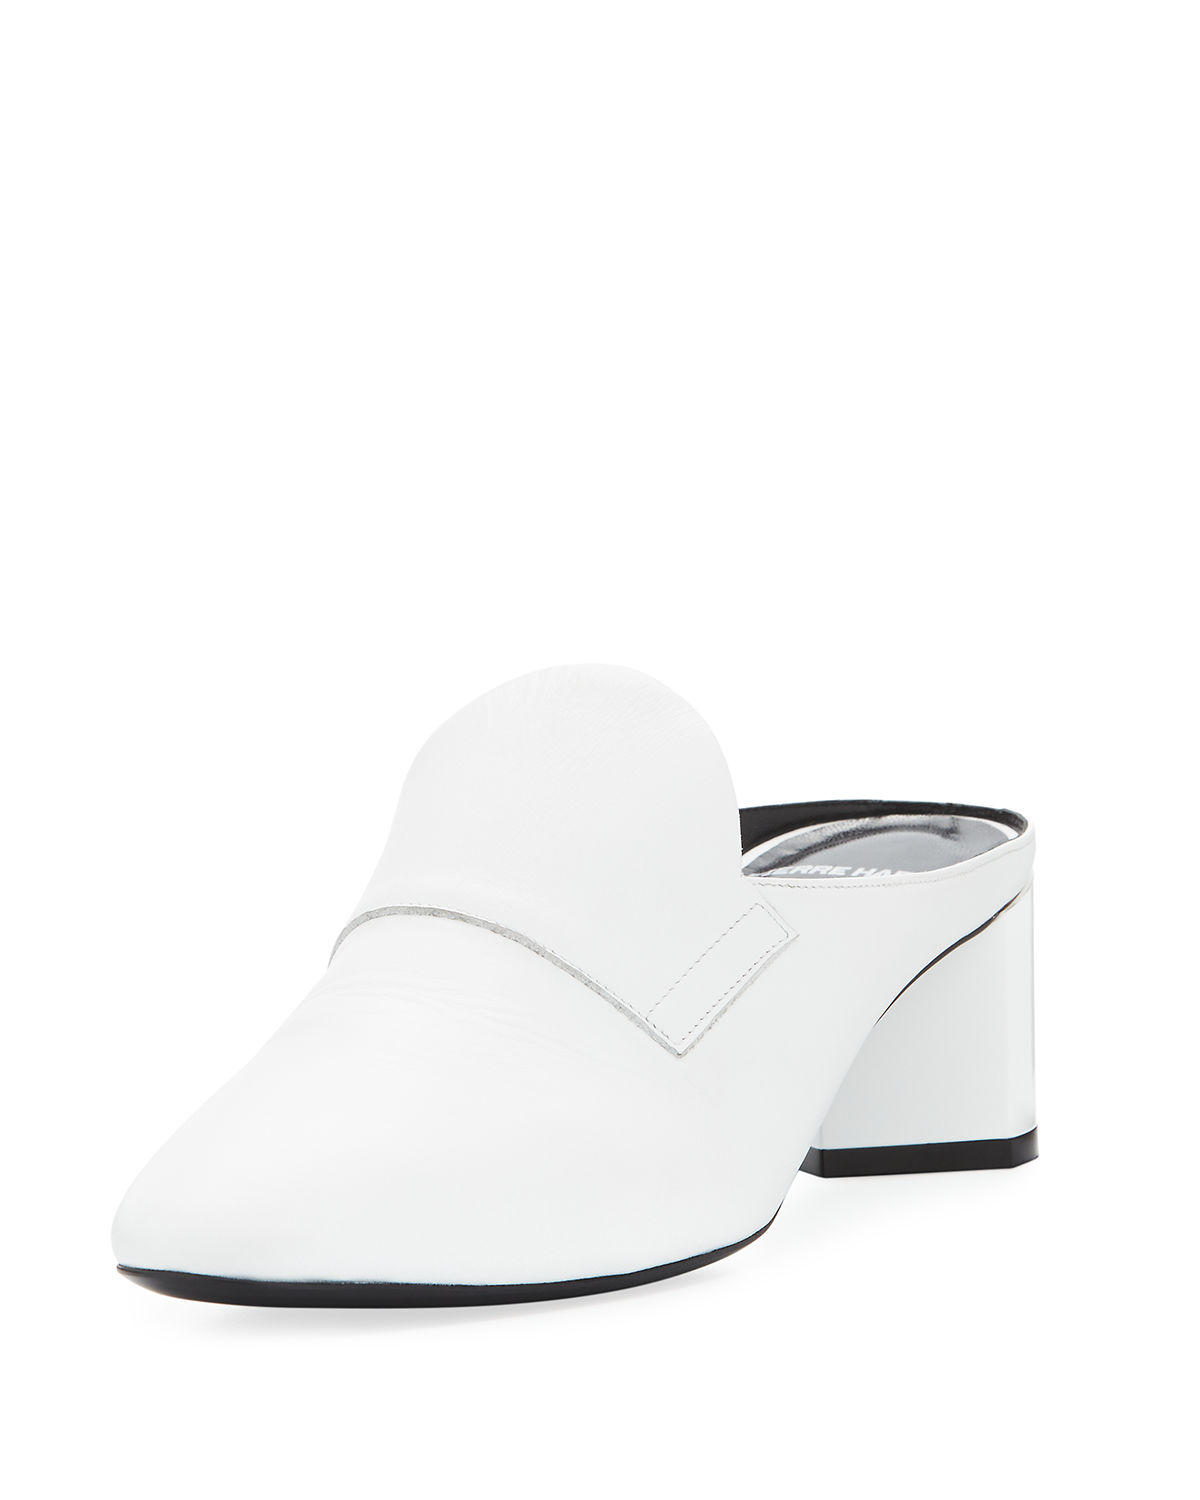 Jacno Leather Block-Heel Mule